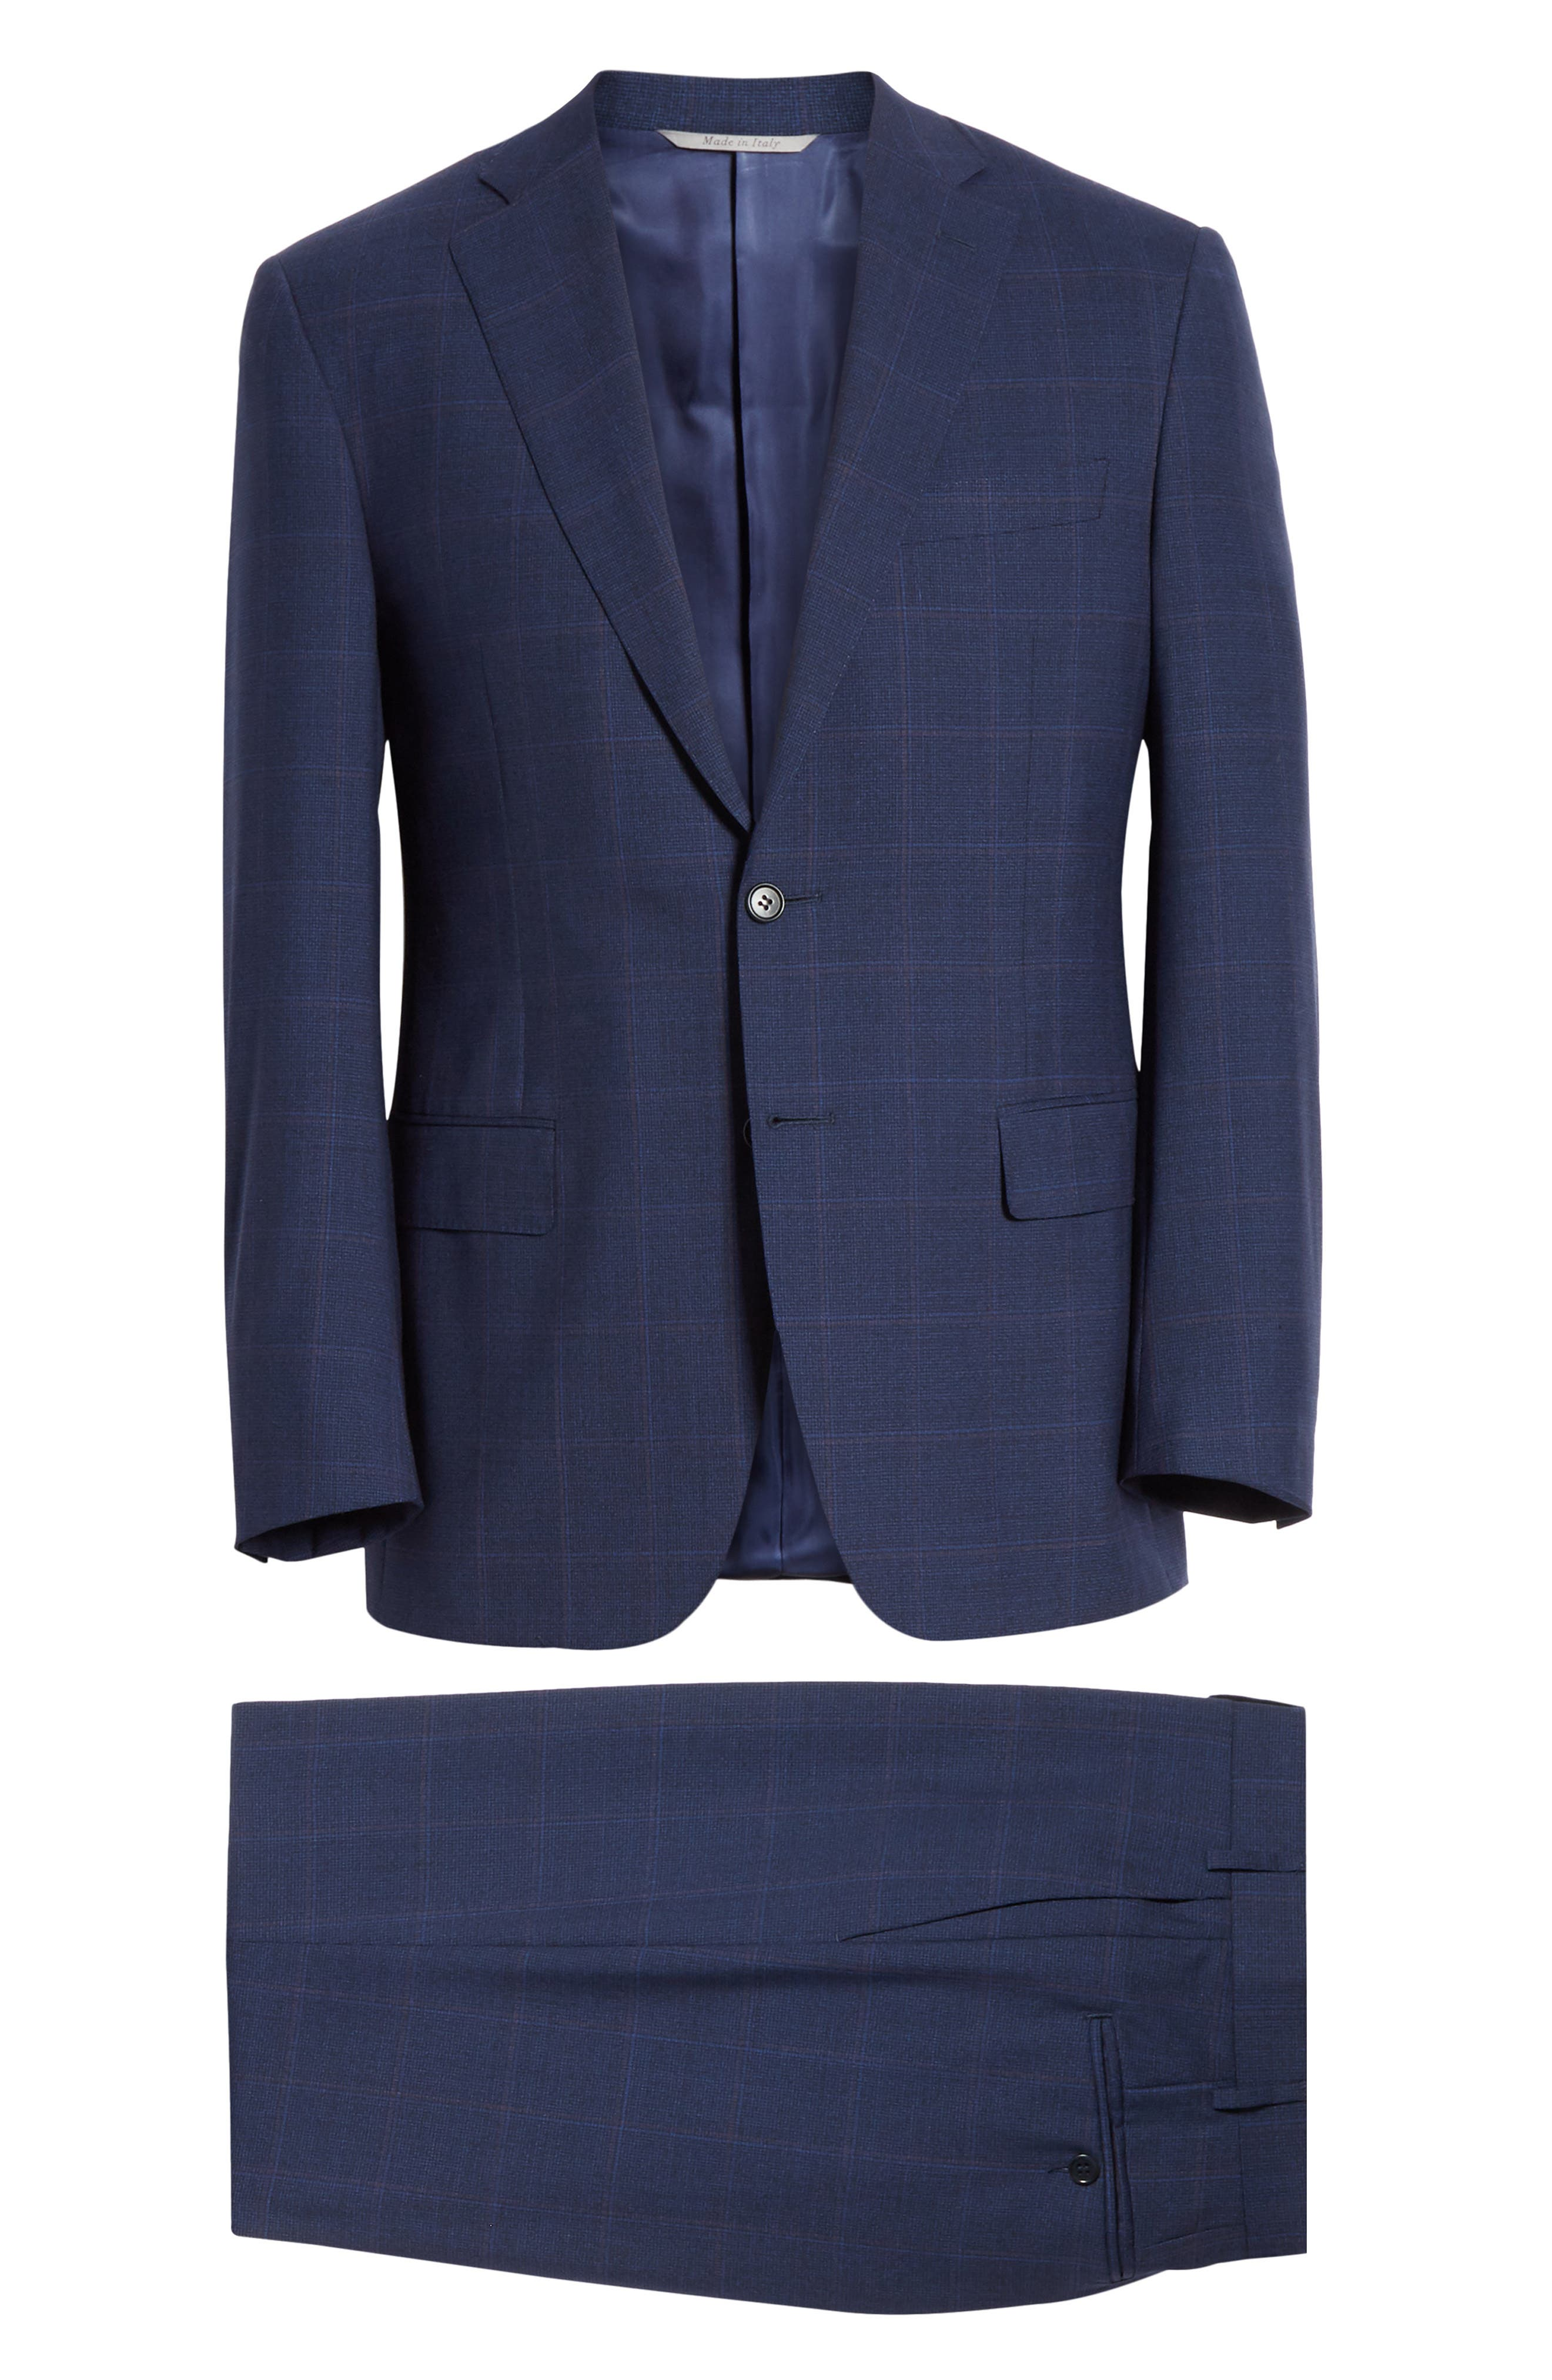 CANALI, Siena Soft Classic Fit Plaid Wool Suit, Alternate thumbnail 8, color, NAVY